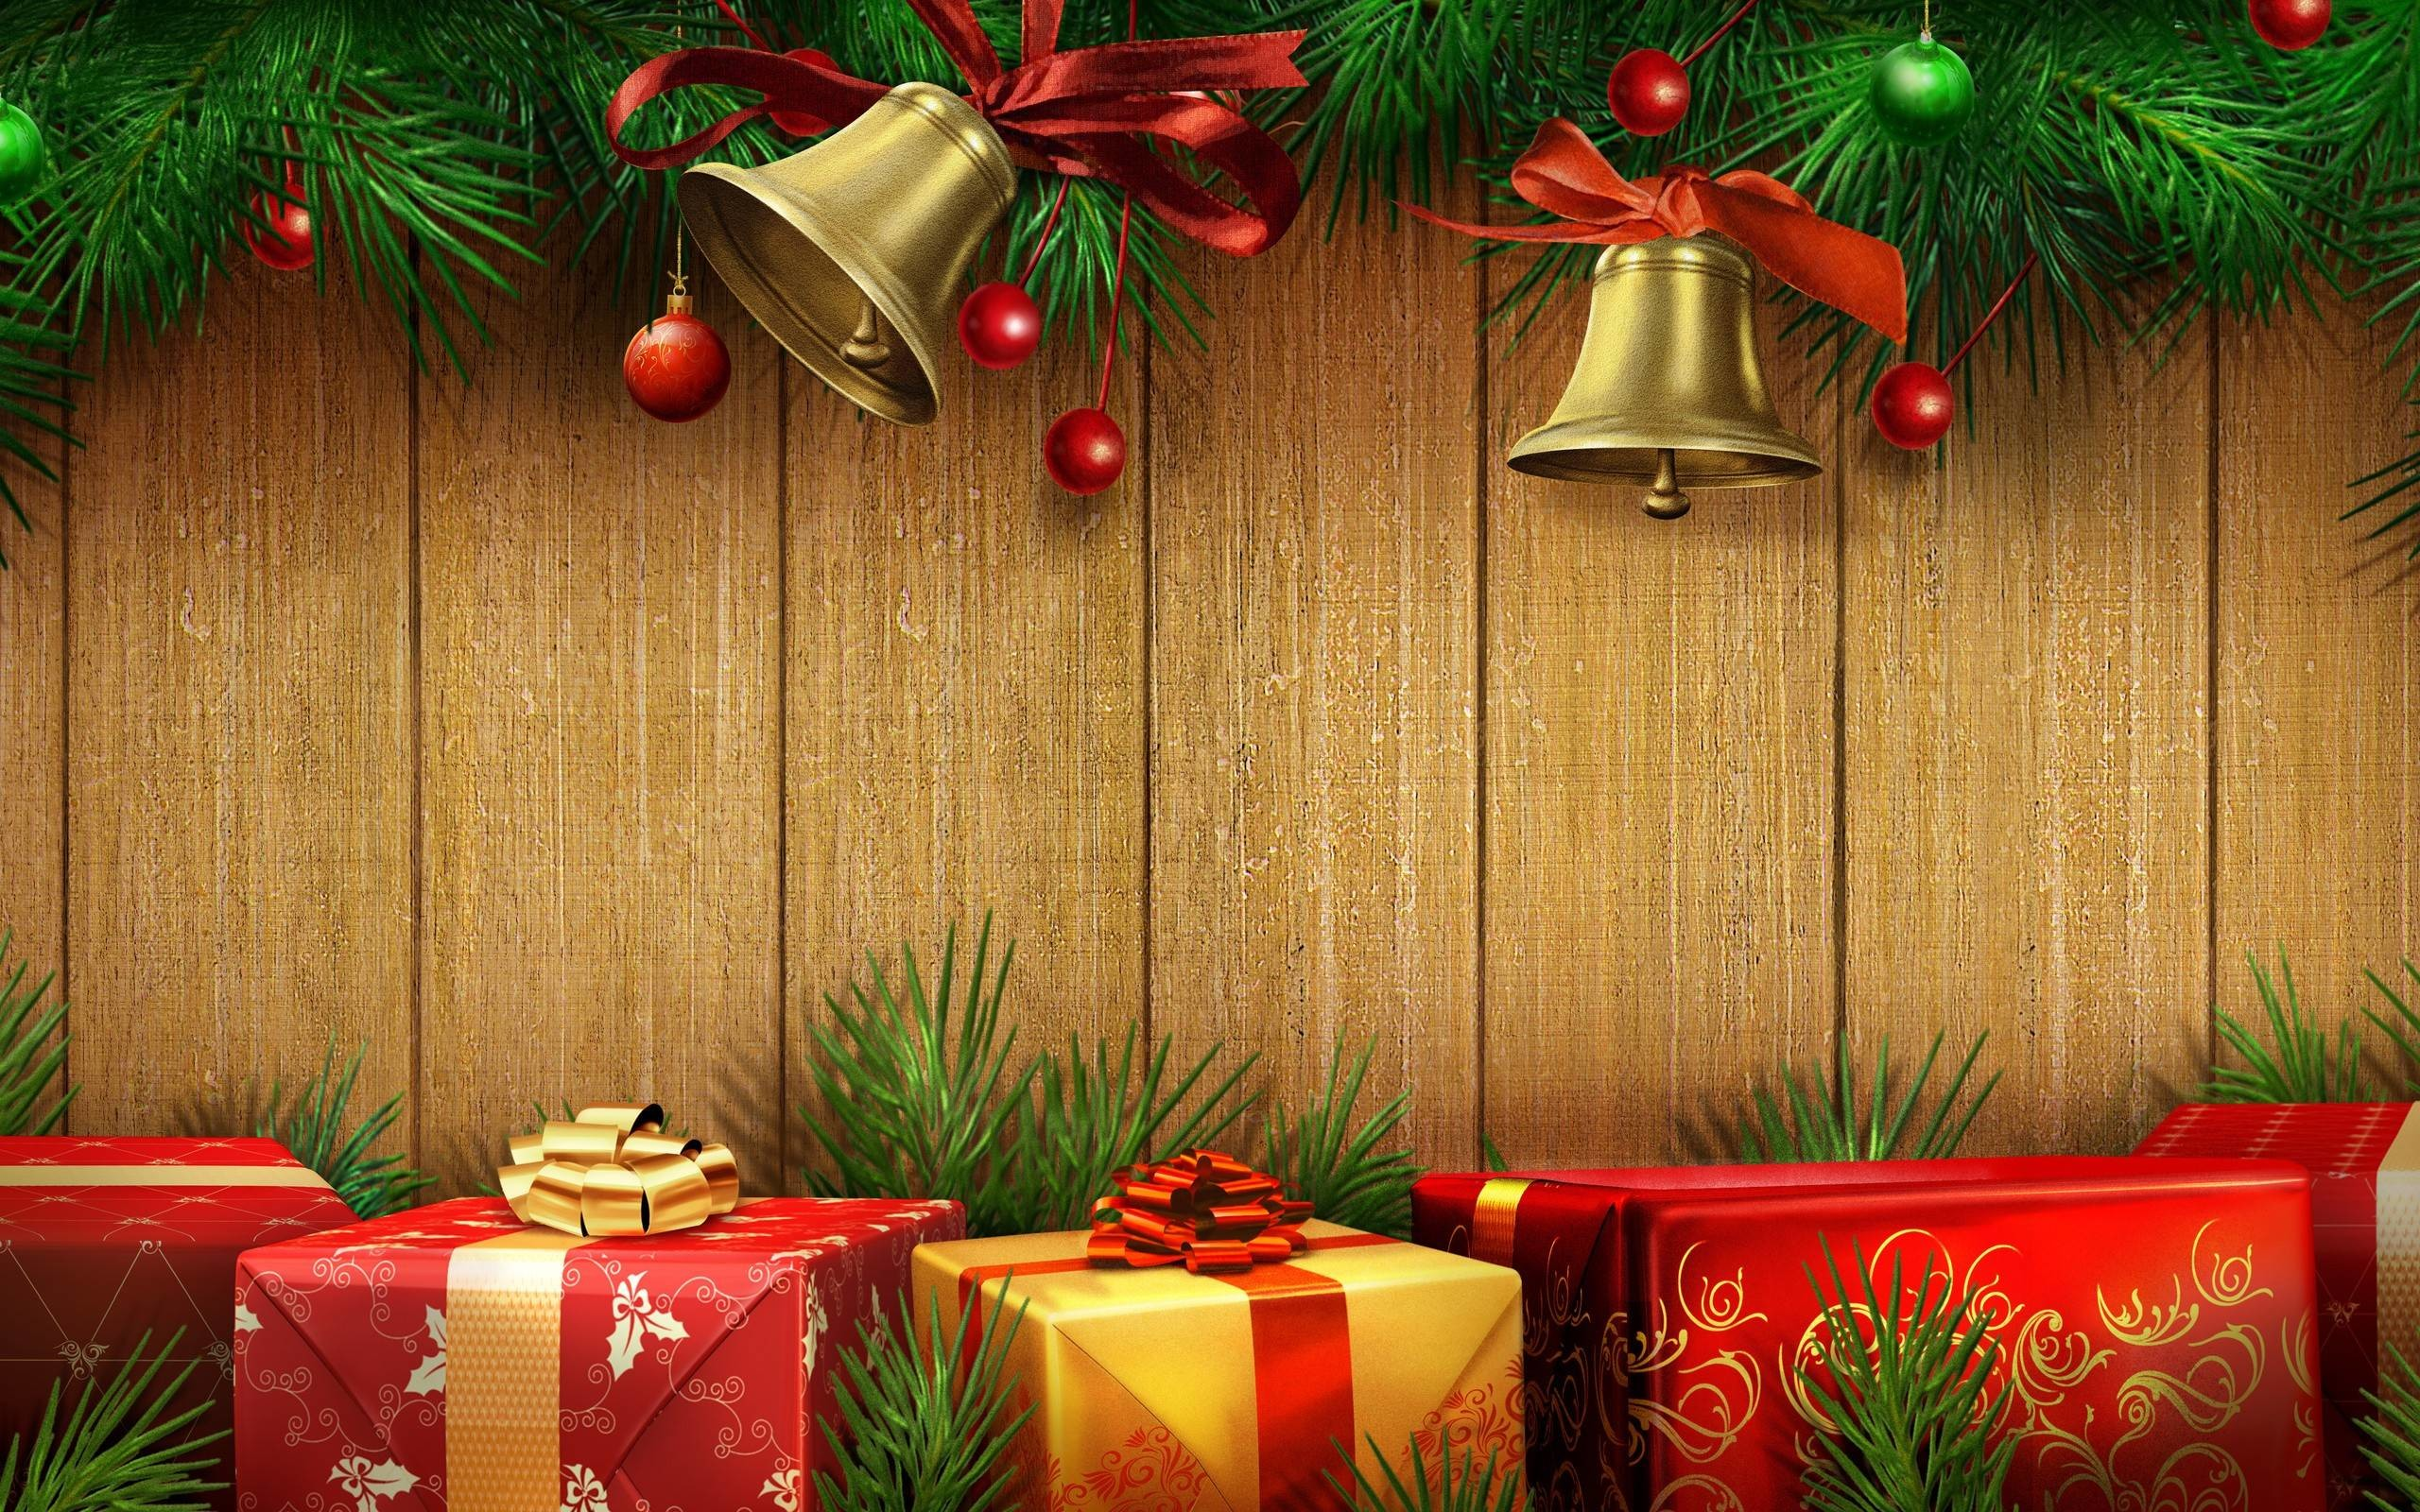 2560x1600 Xmas Stuff For > Christmas Gifts Wallpaper